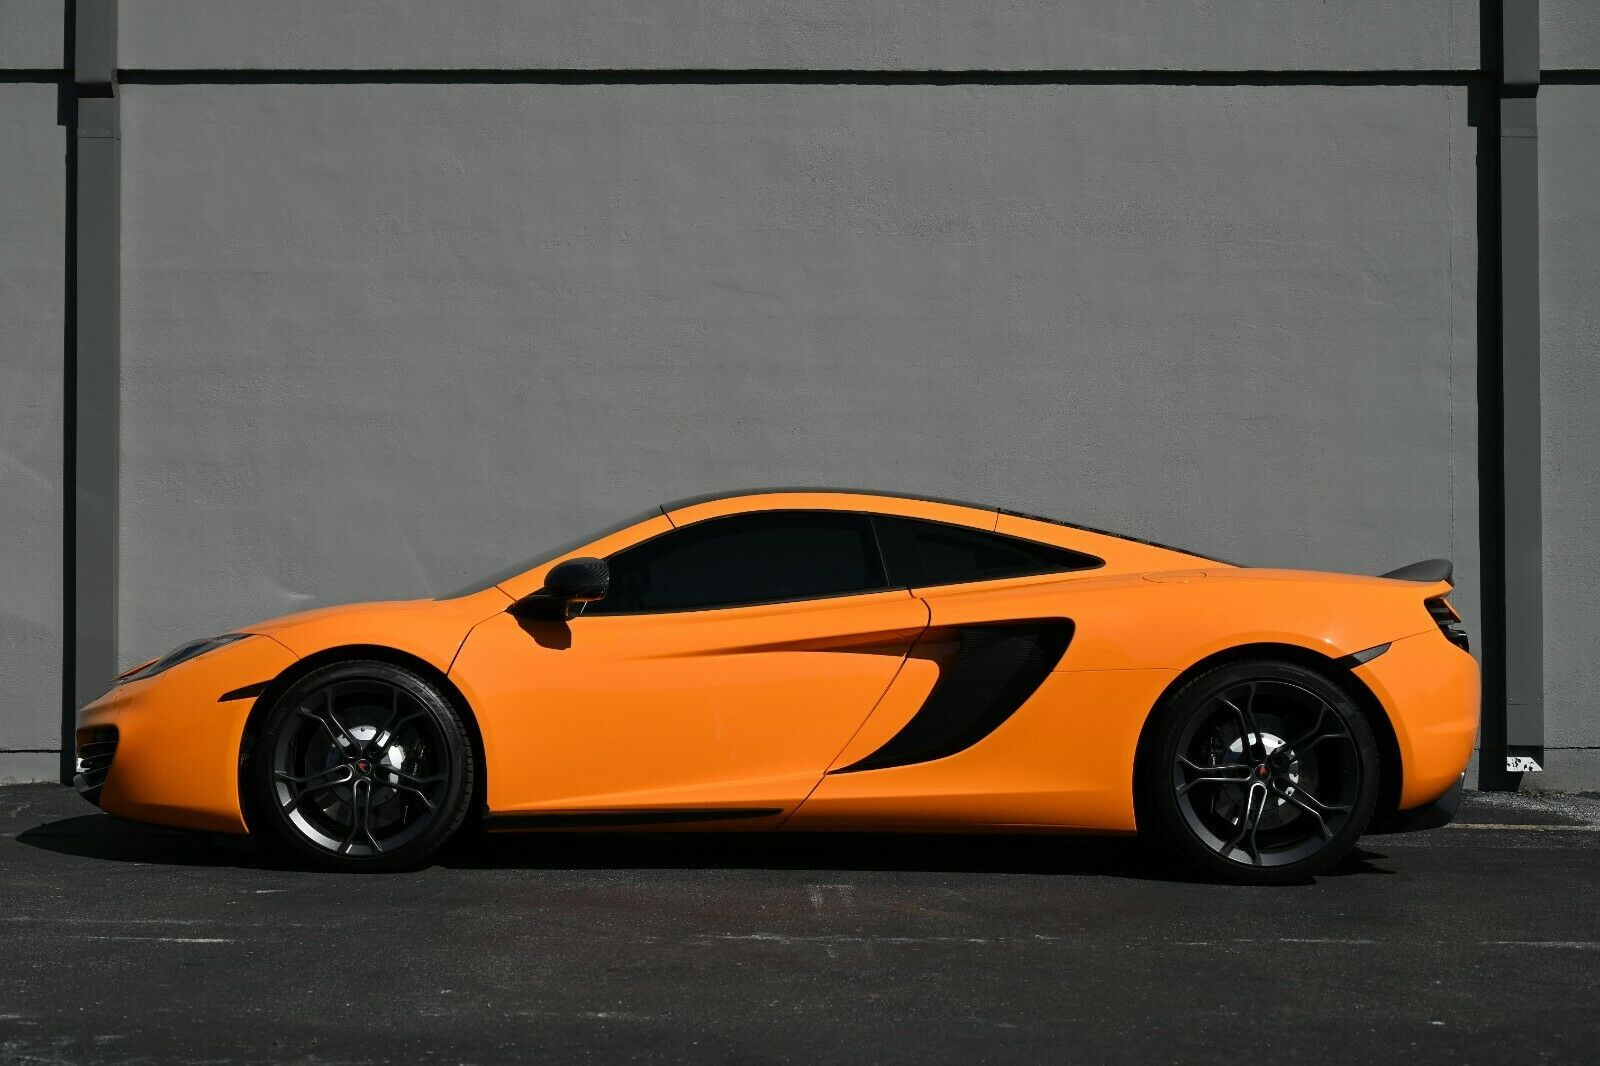 2012 Mclaren Mp4 12c Contact Joel 281 919 6269 In 2020 Supercars For Sale Electric Cars For Sale Super Cars